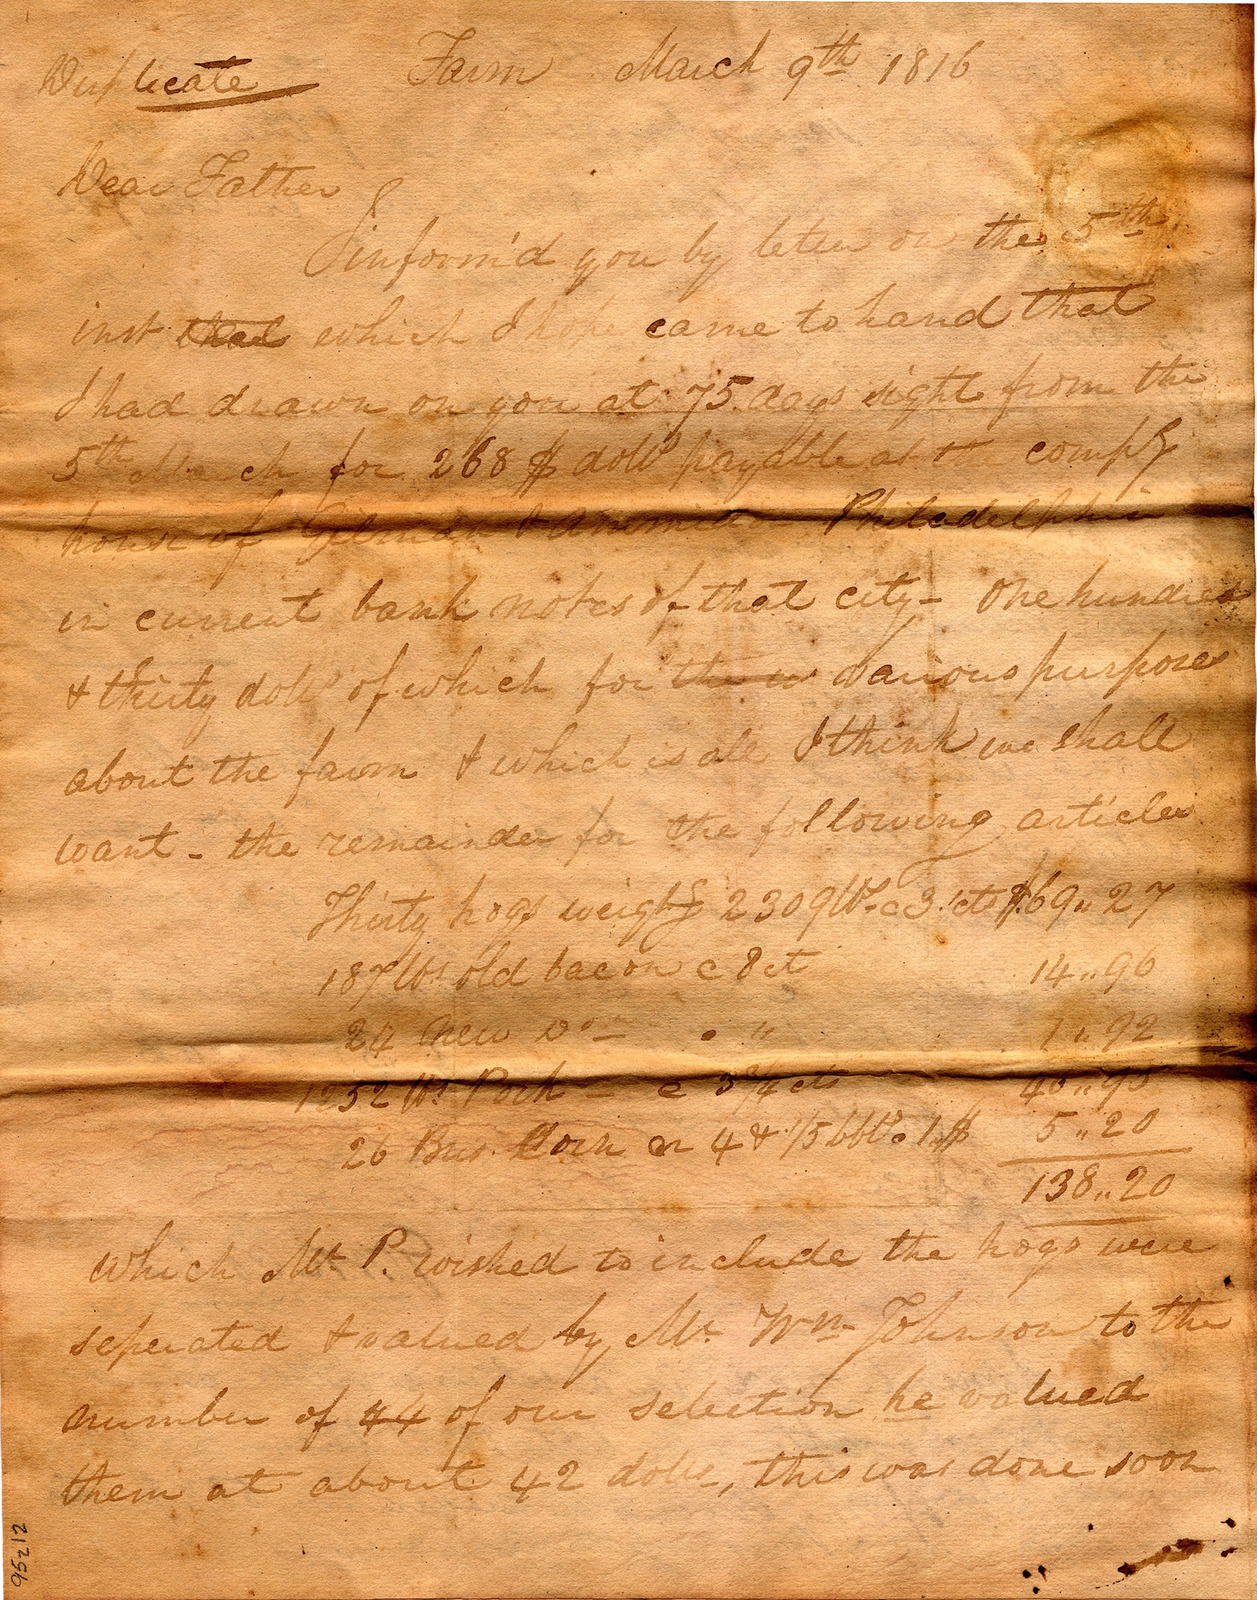 Letter from George Corlis to John Corlis